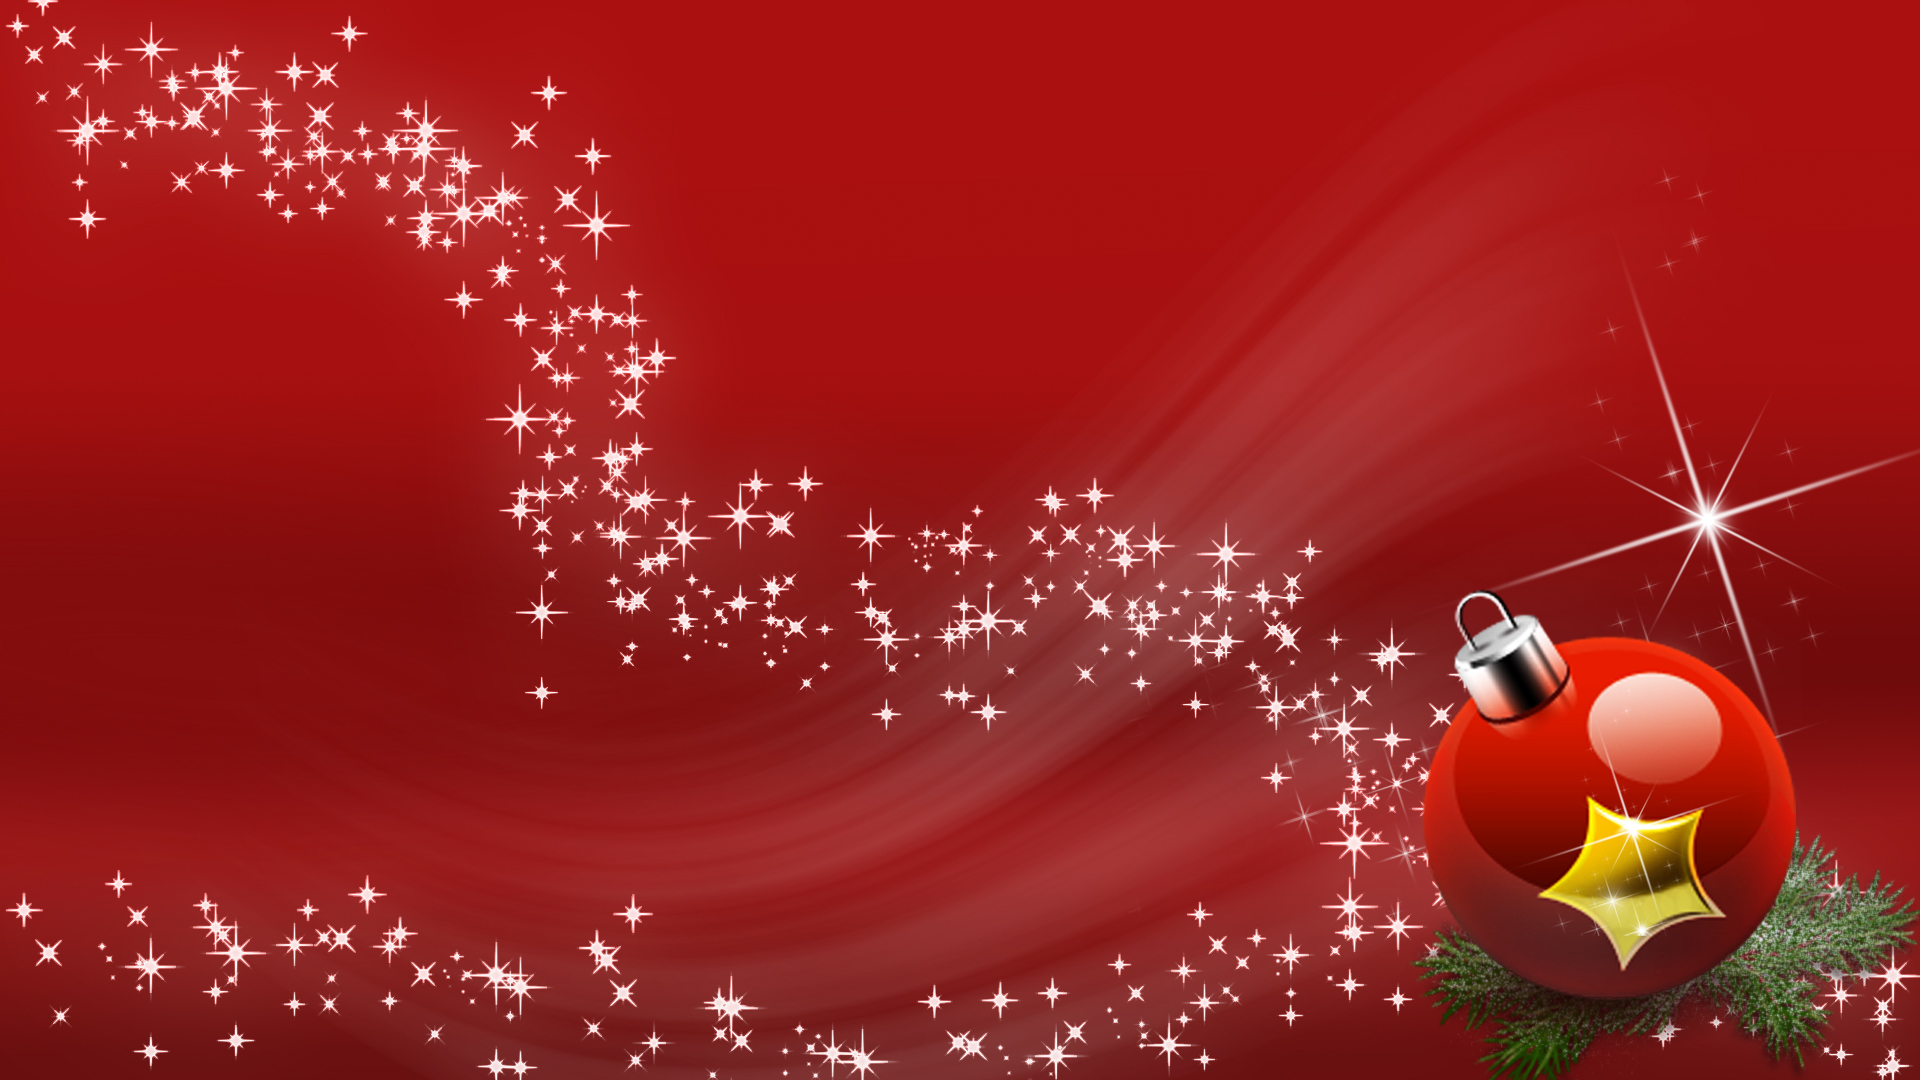 Wallpapers 3d Hello Kitty Gratis Christmas Red 2012 By Frankief On Deviantart